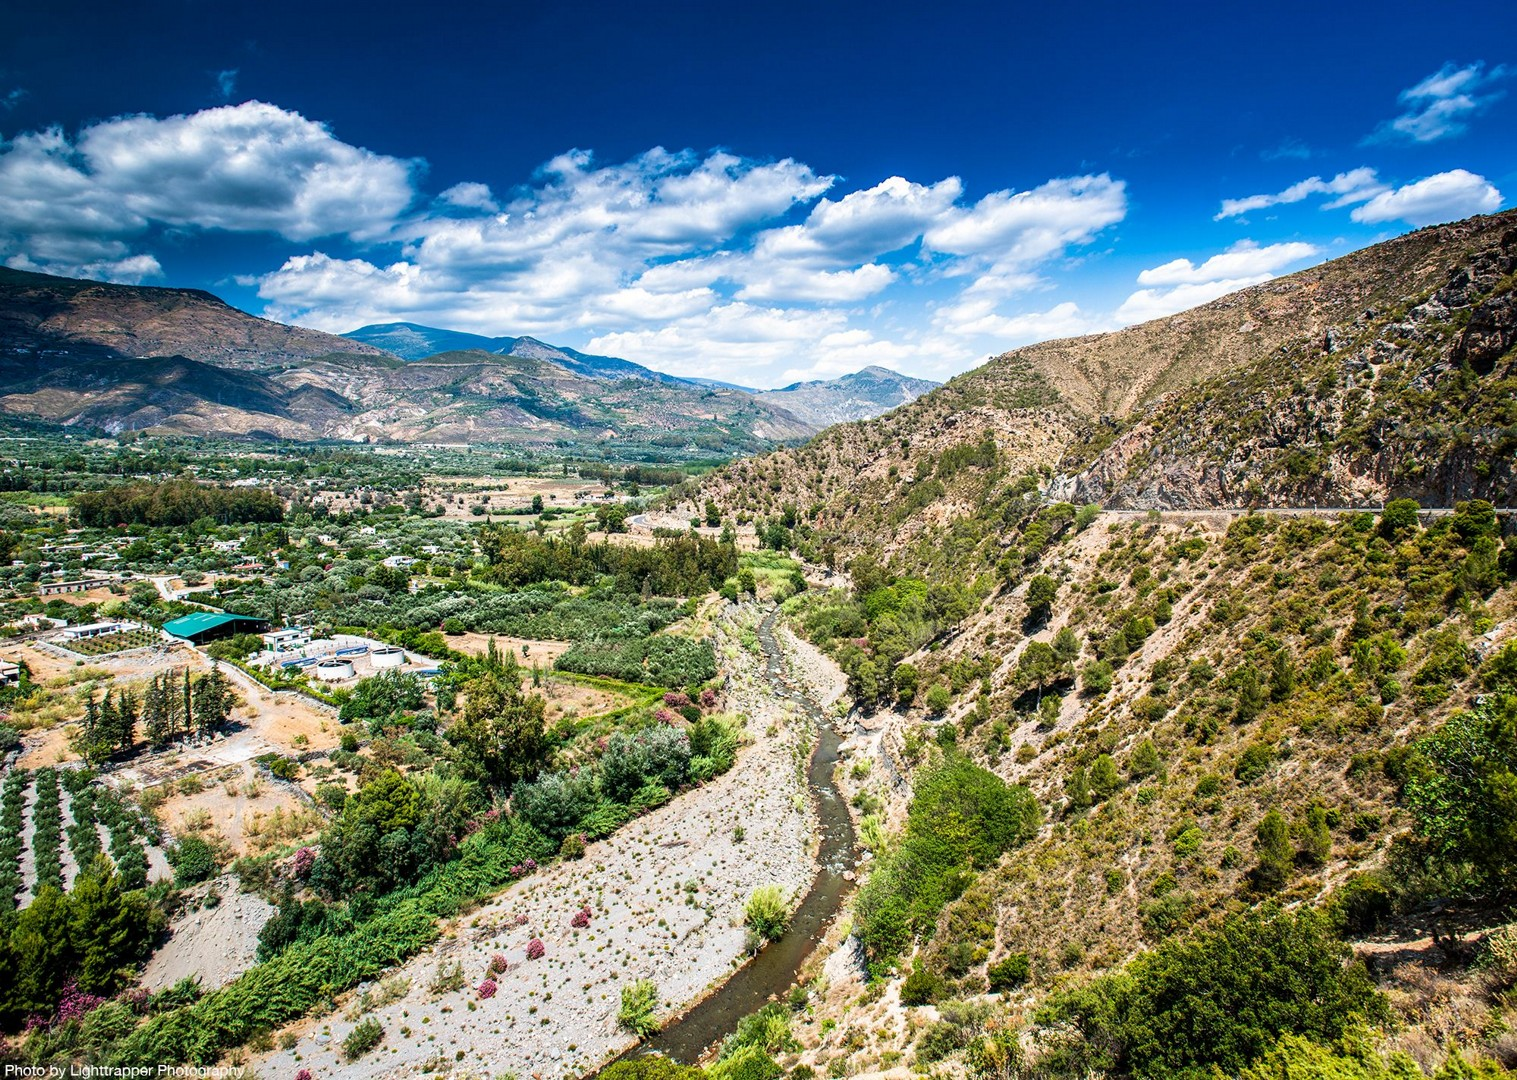 spanish-mountains-guided-road-cycling-holiday-sierra-nevada-granada-skedaddle.jpg - Southern Spain - Sierra Nevada and Granada - Guided Road Cycling Holiday - Road Cycling